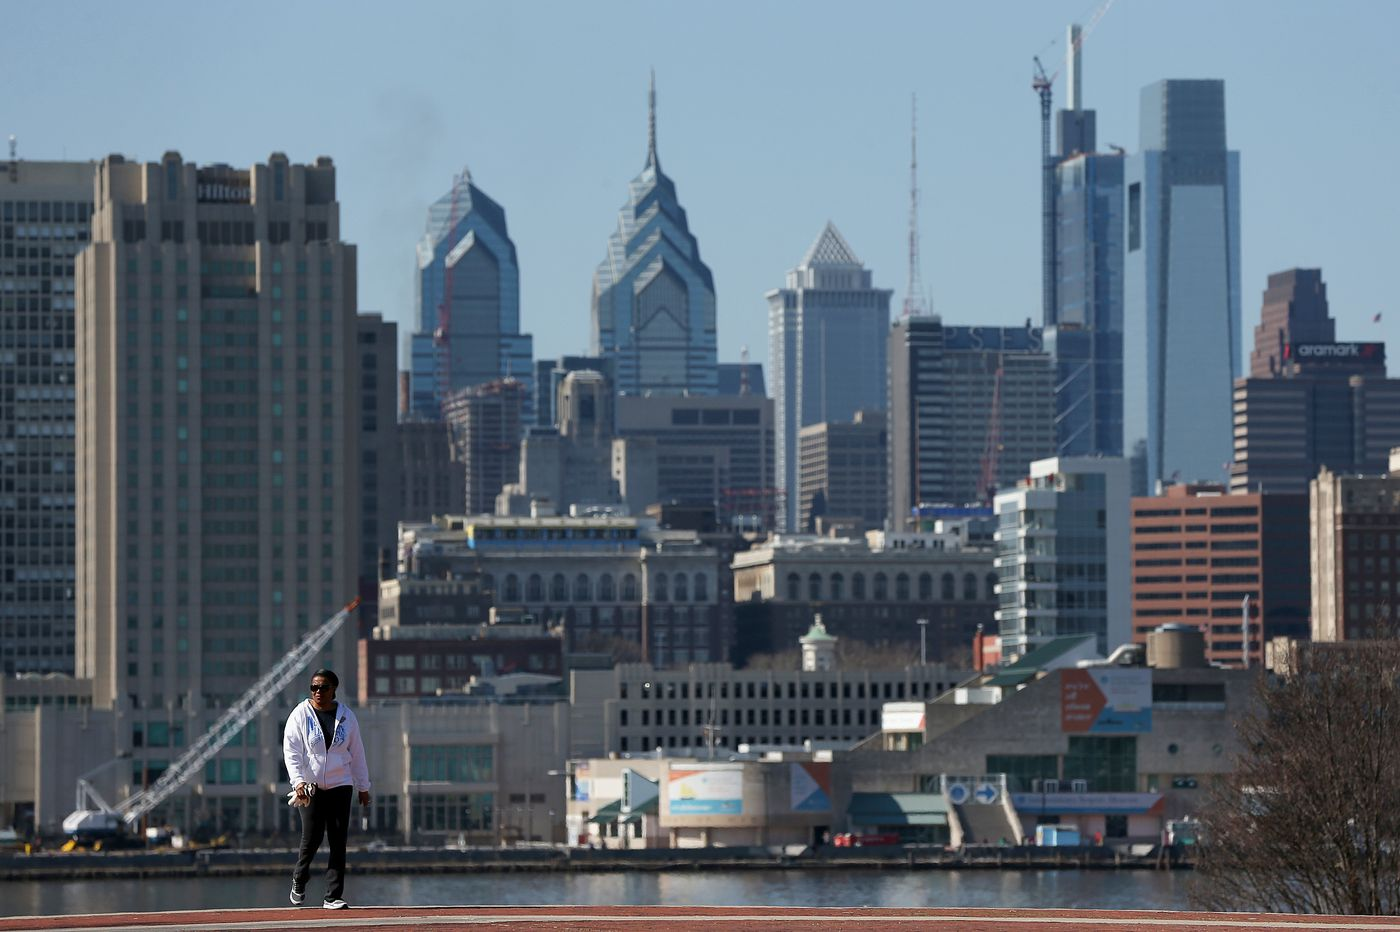 If Philly job growth doesn't keep up, millennials will go where the good jobs are, new study warns